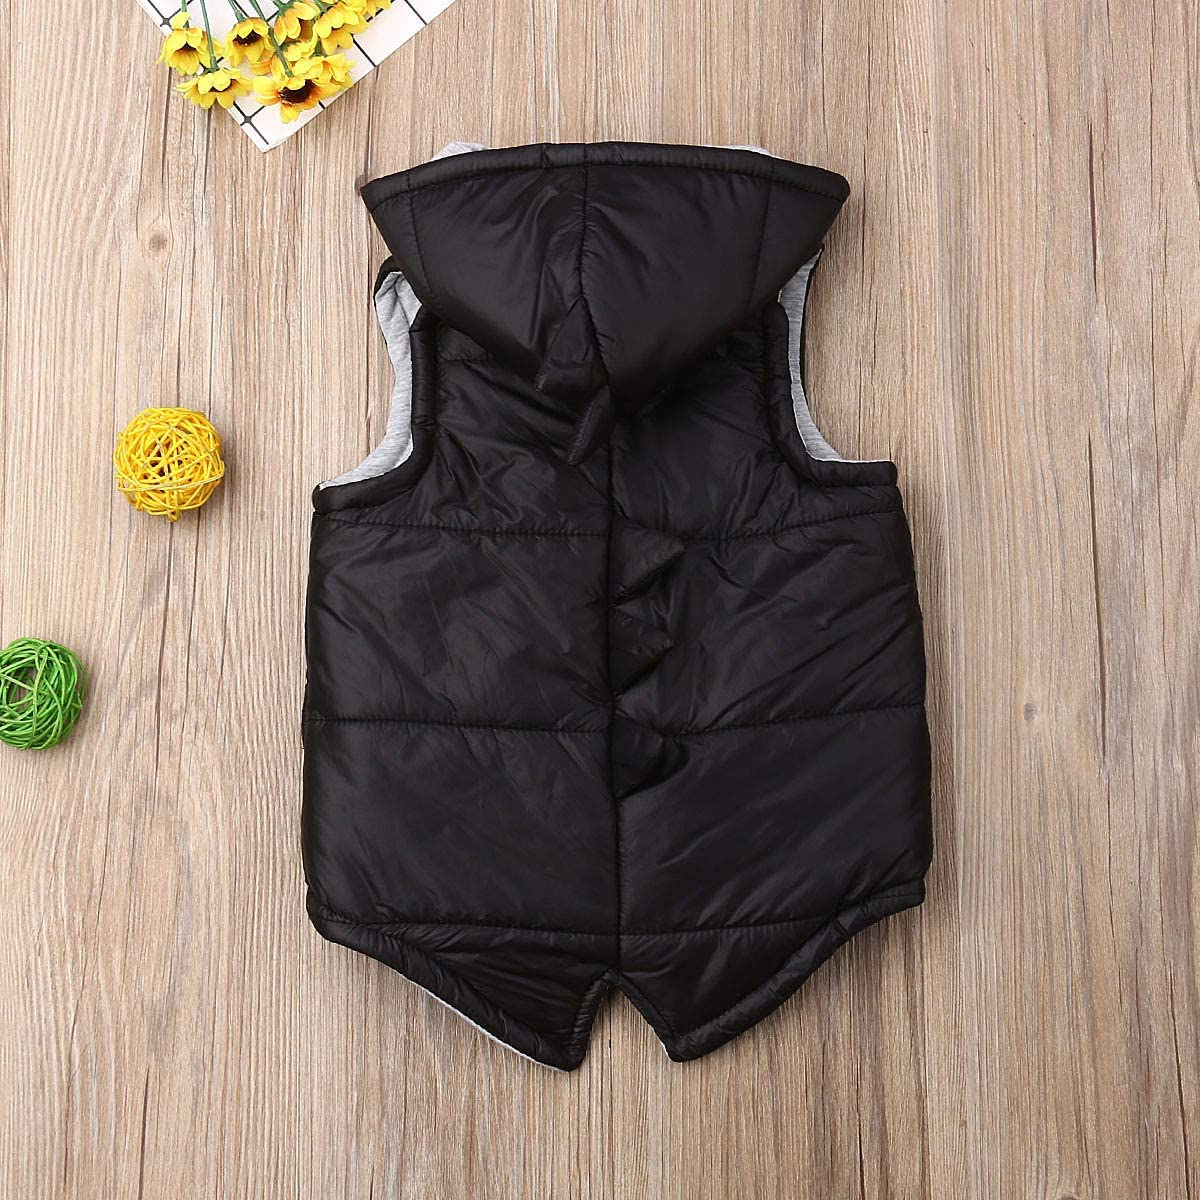 Toddler Baby Girl Boy Hoodie Vest Jacket 3D Dinosaur Sleeveless Waistcoat Warm Outwear